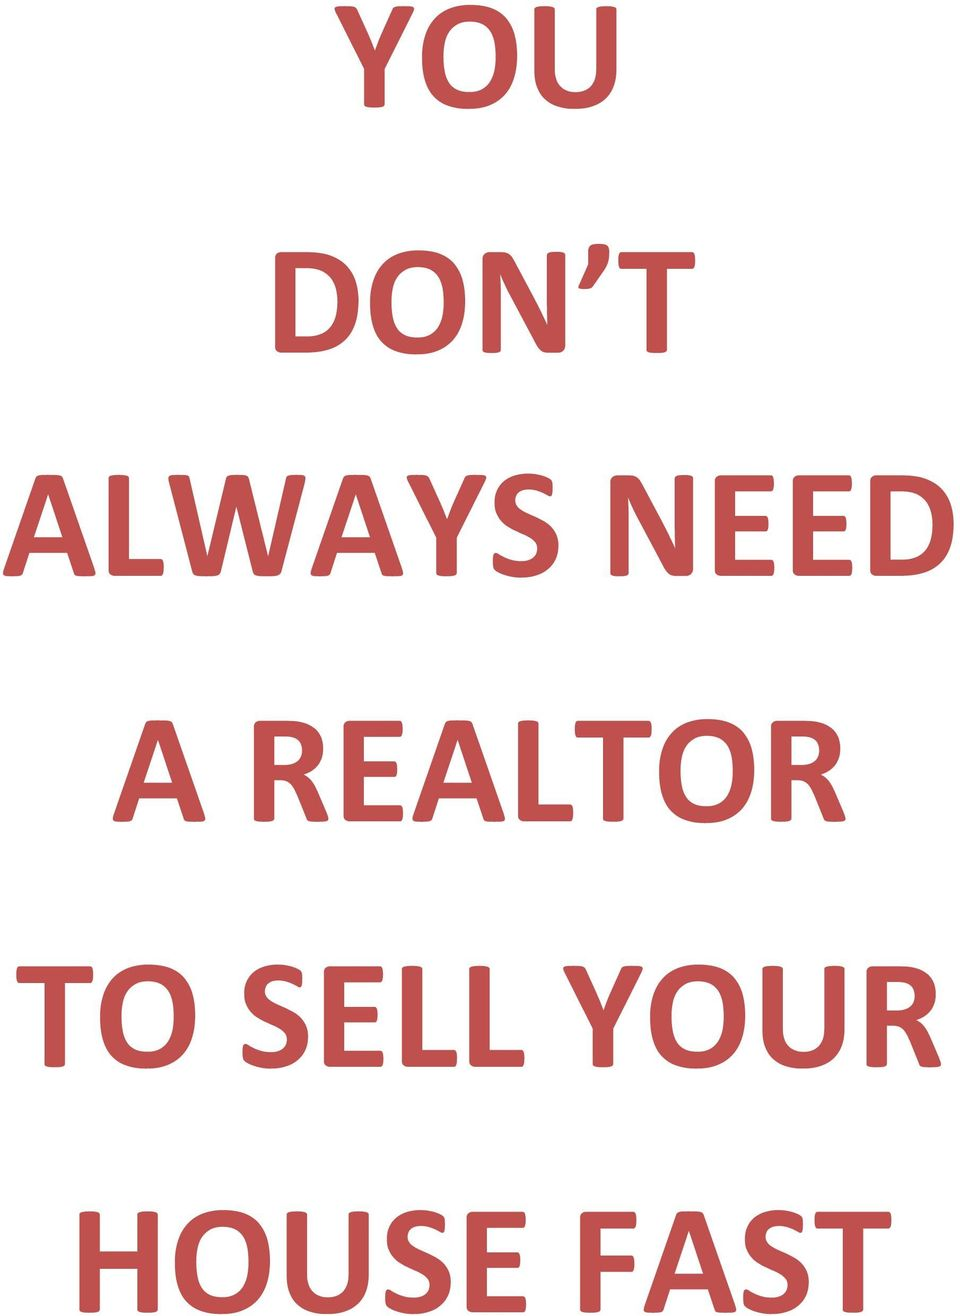 REALTOR TO